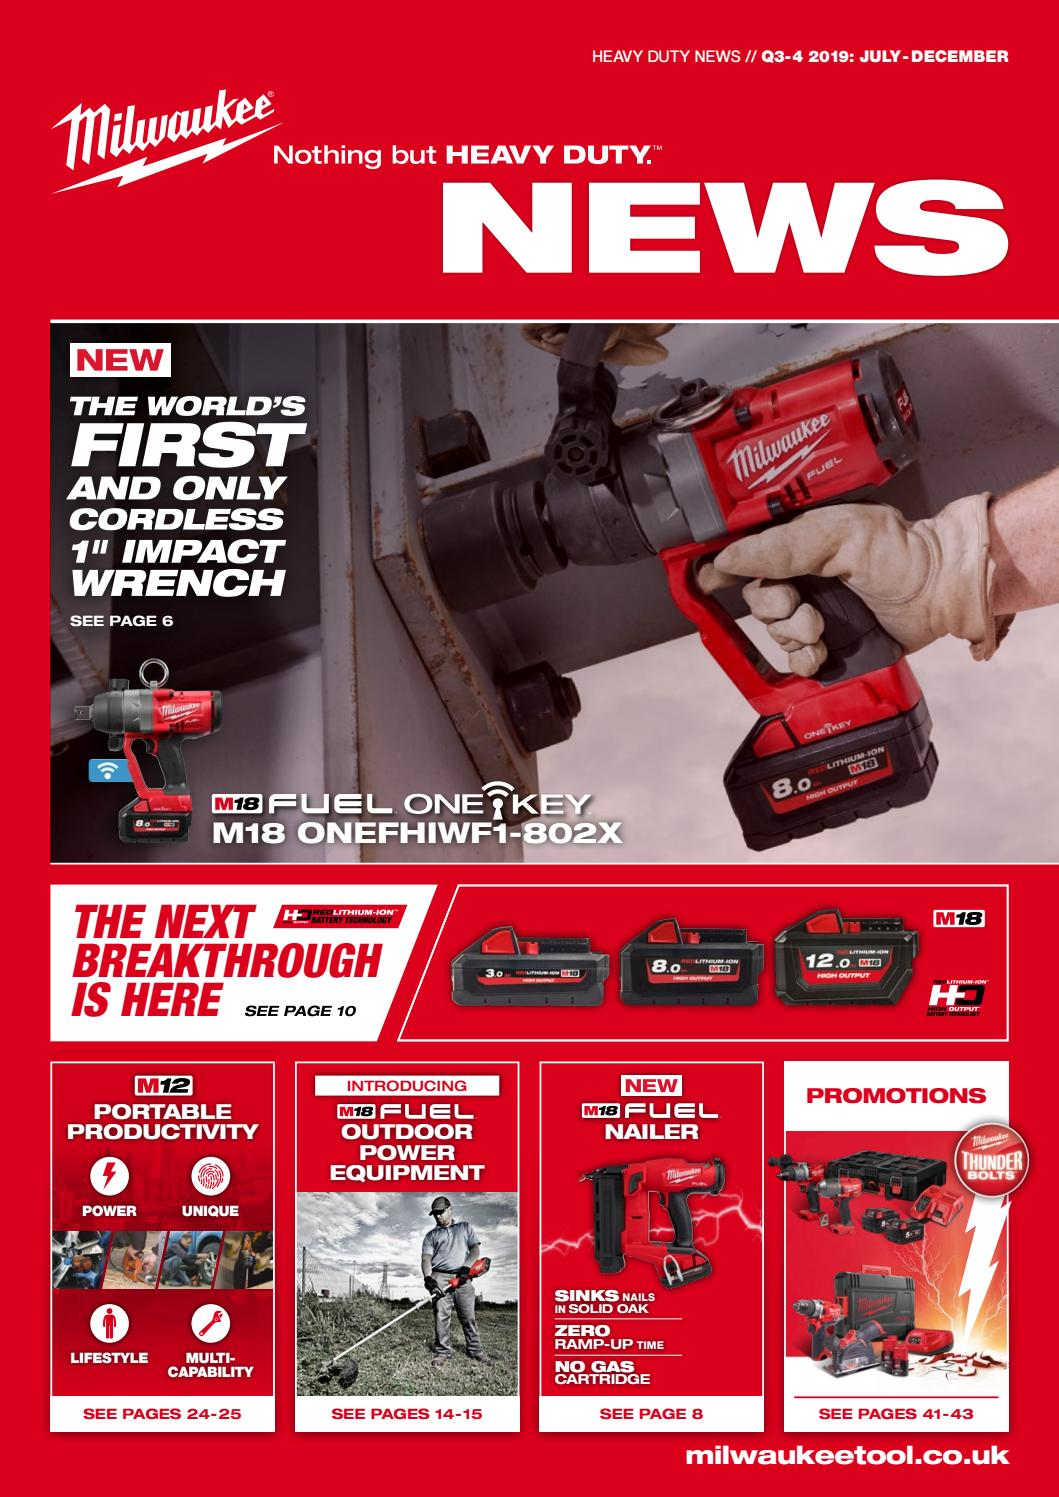 Milwaukee M18BJS-0 18v Heavy-Duty Top Handle Jigsaw Bare Unit